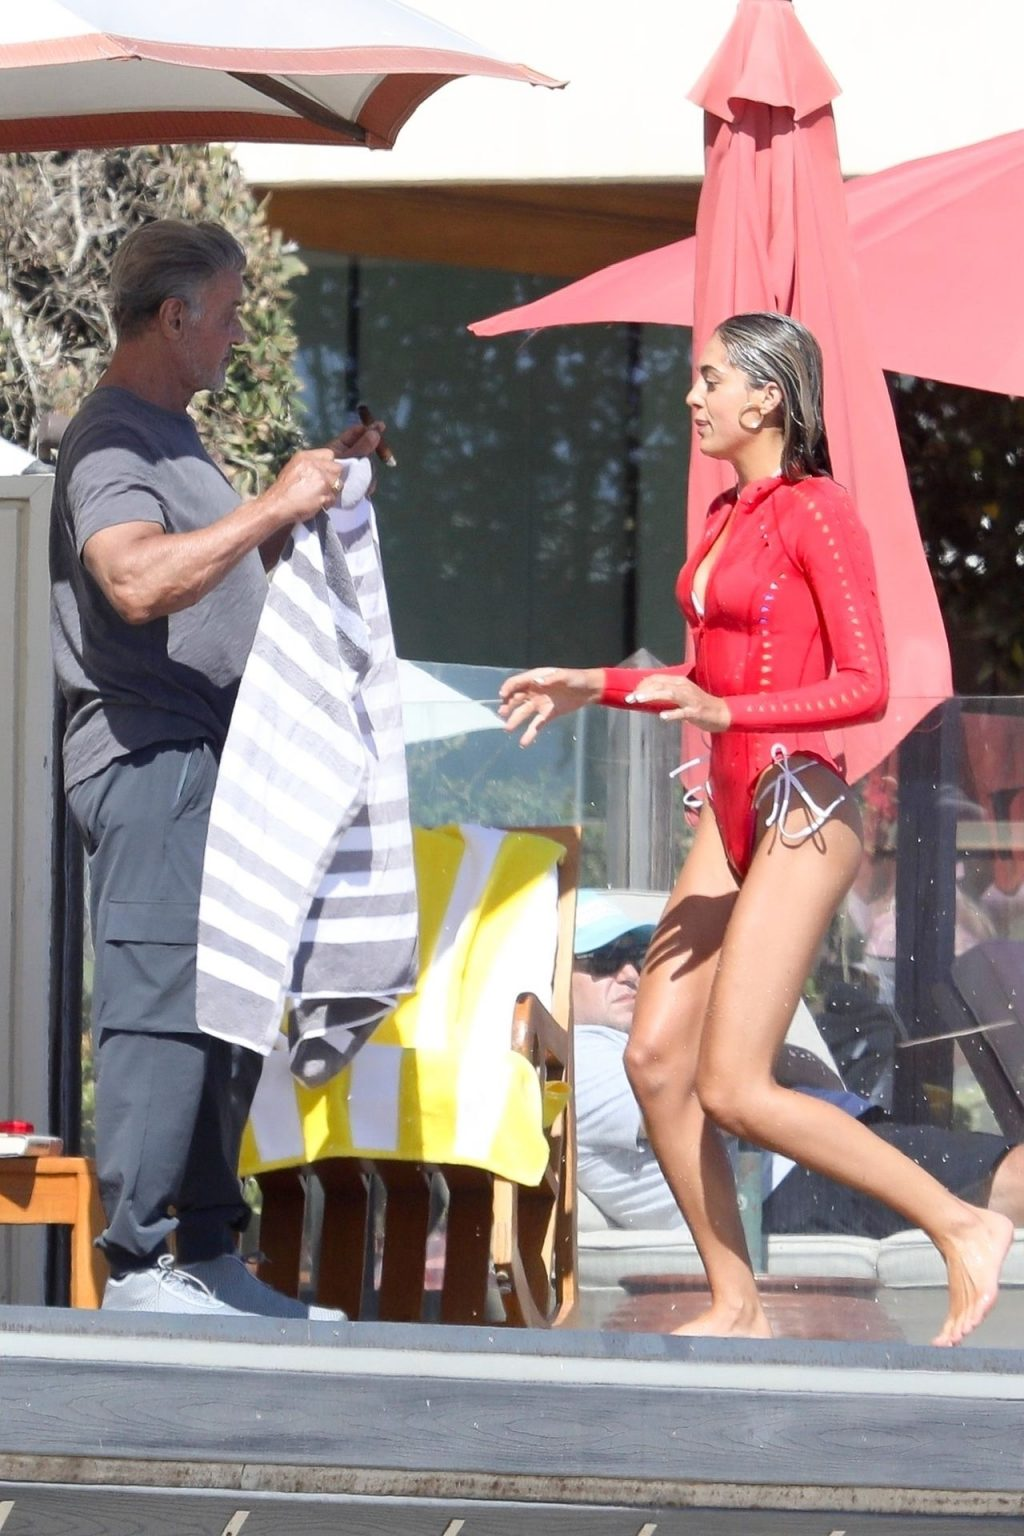 Sistine Stallone Enjoys a Day with Her Family (57 Photos)